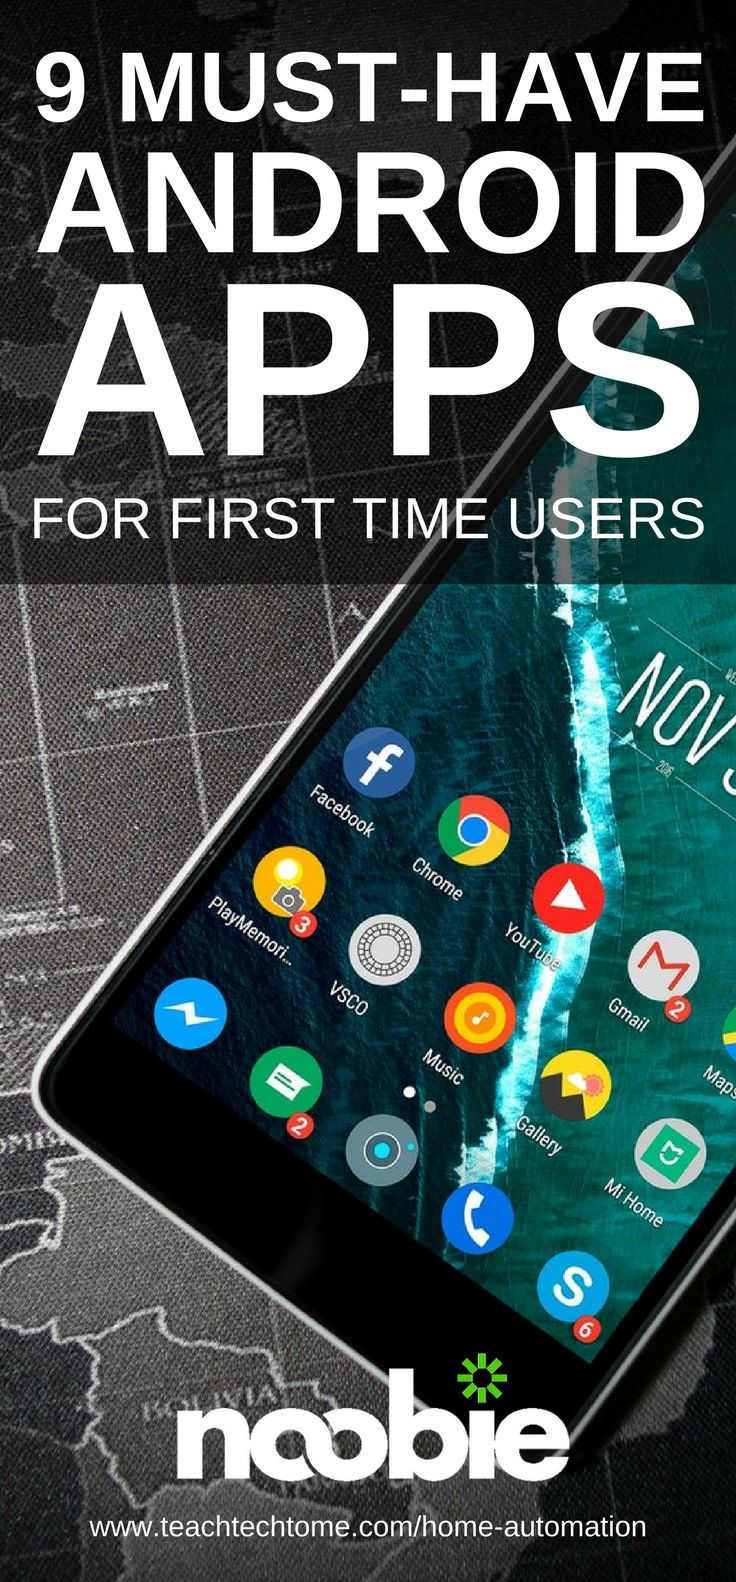 MustHave Android Apps for FirstTime Users Android